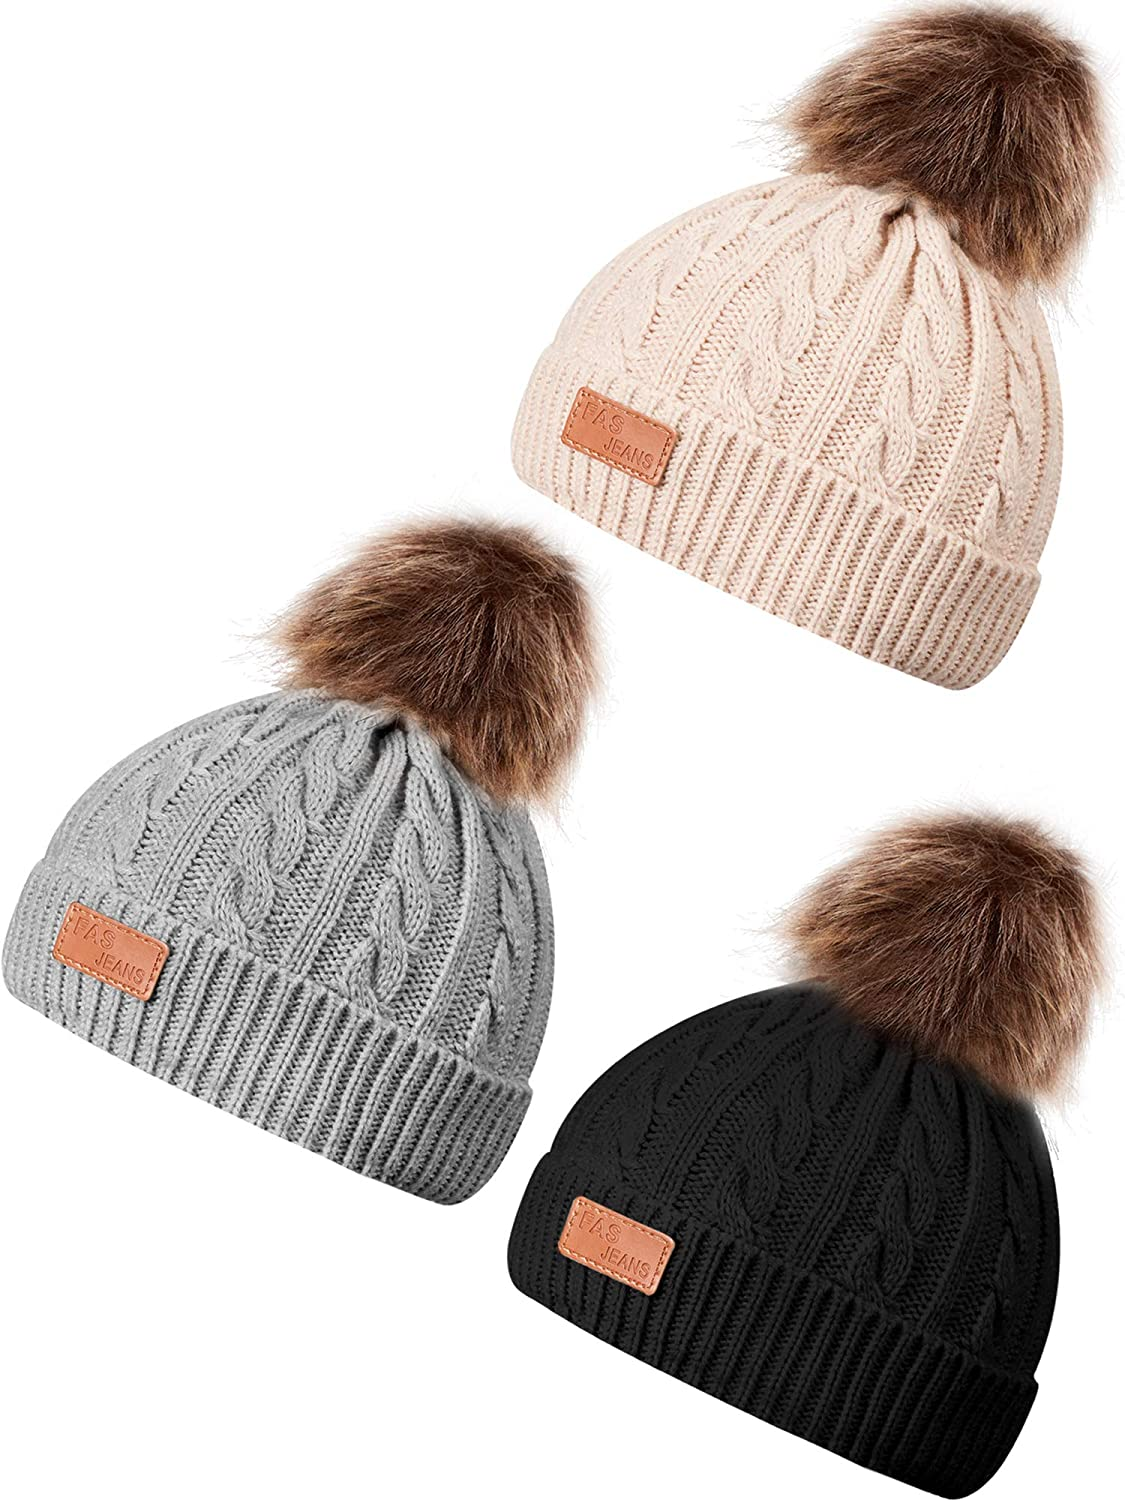 3 Pieces Baby Winter Hats Kids Warm Knit Beanie Cap with Pompom for Baby Toddler